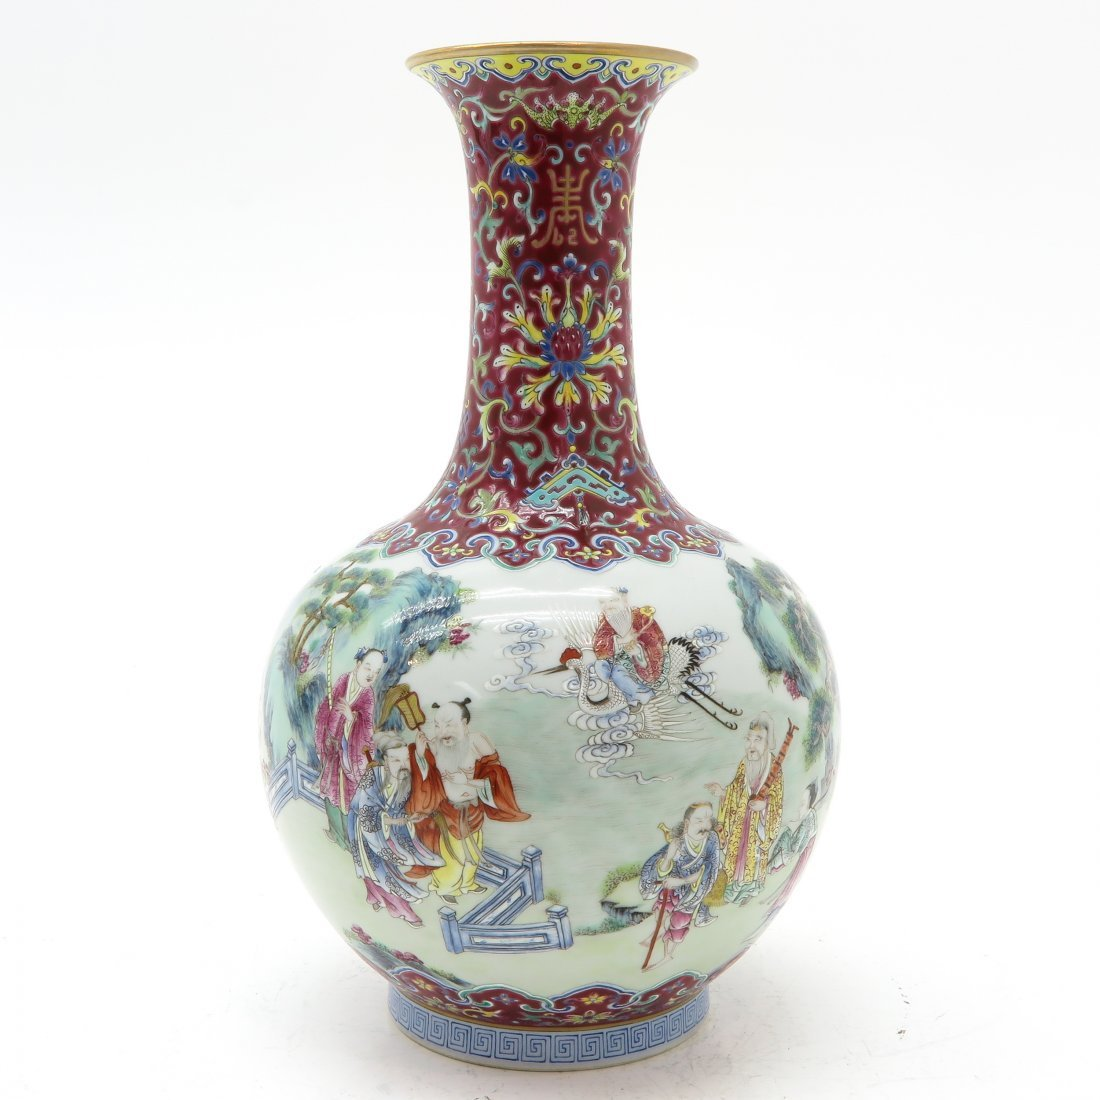 China Porcelain Polychrome Decor Daoguang Vase